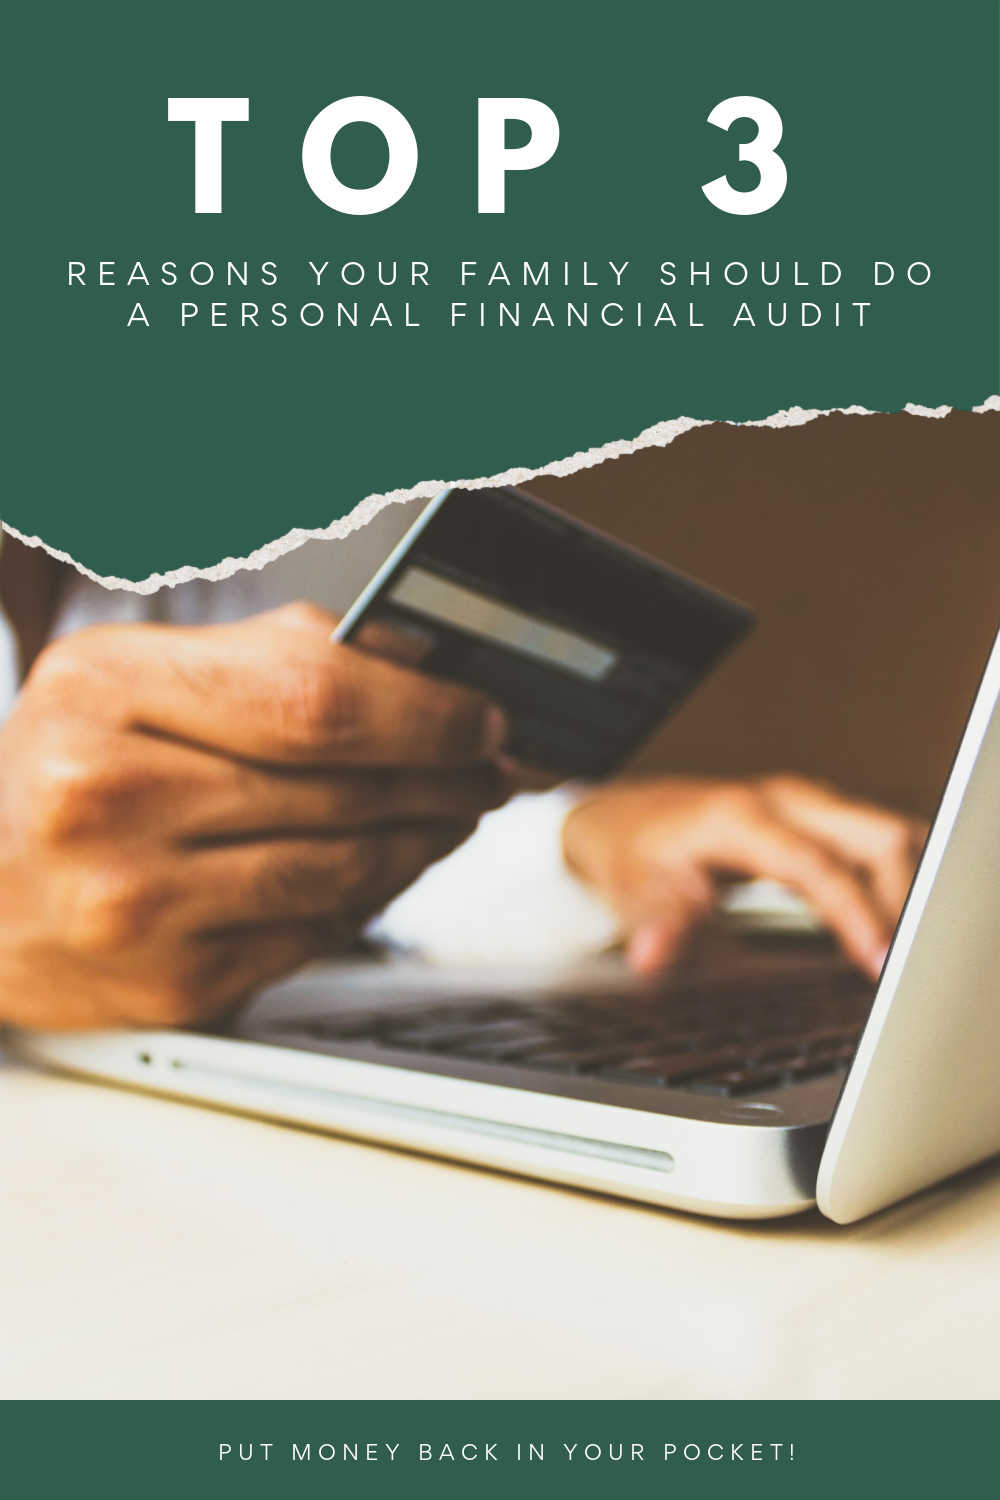 TOP 3 REASONS FOR A PERSONAL FIANCE AUDIT